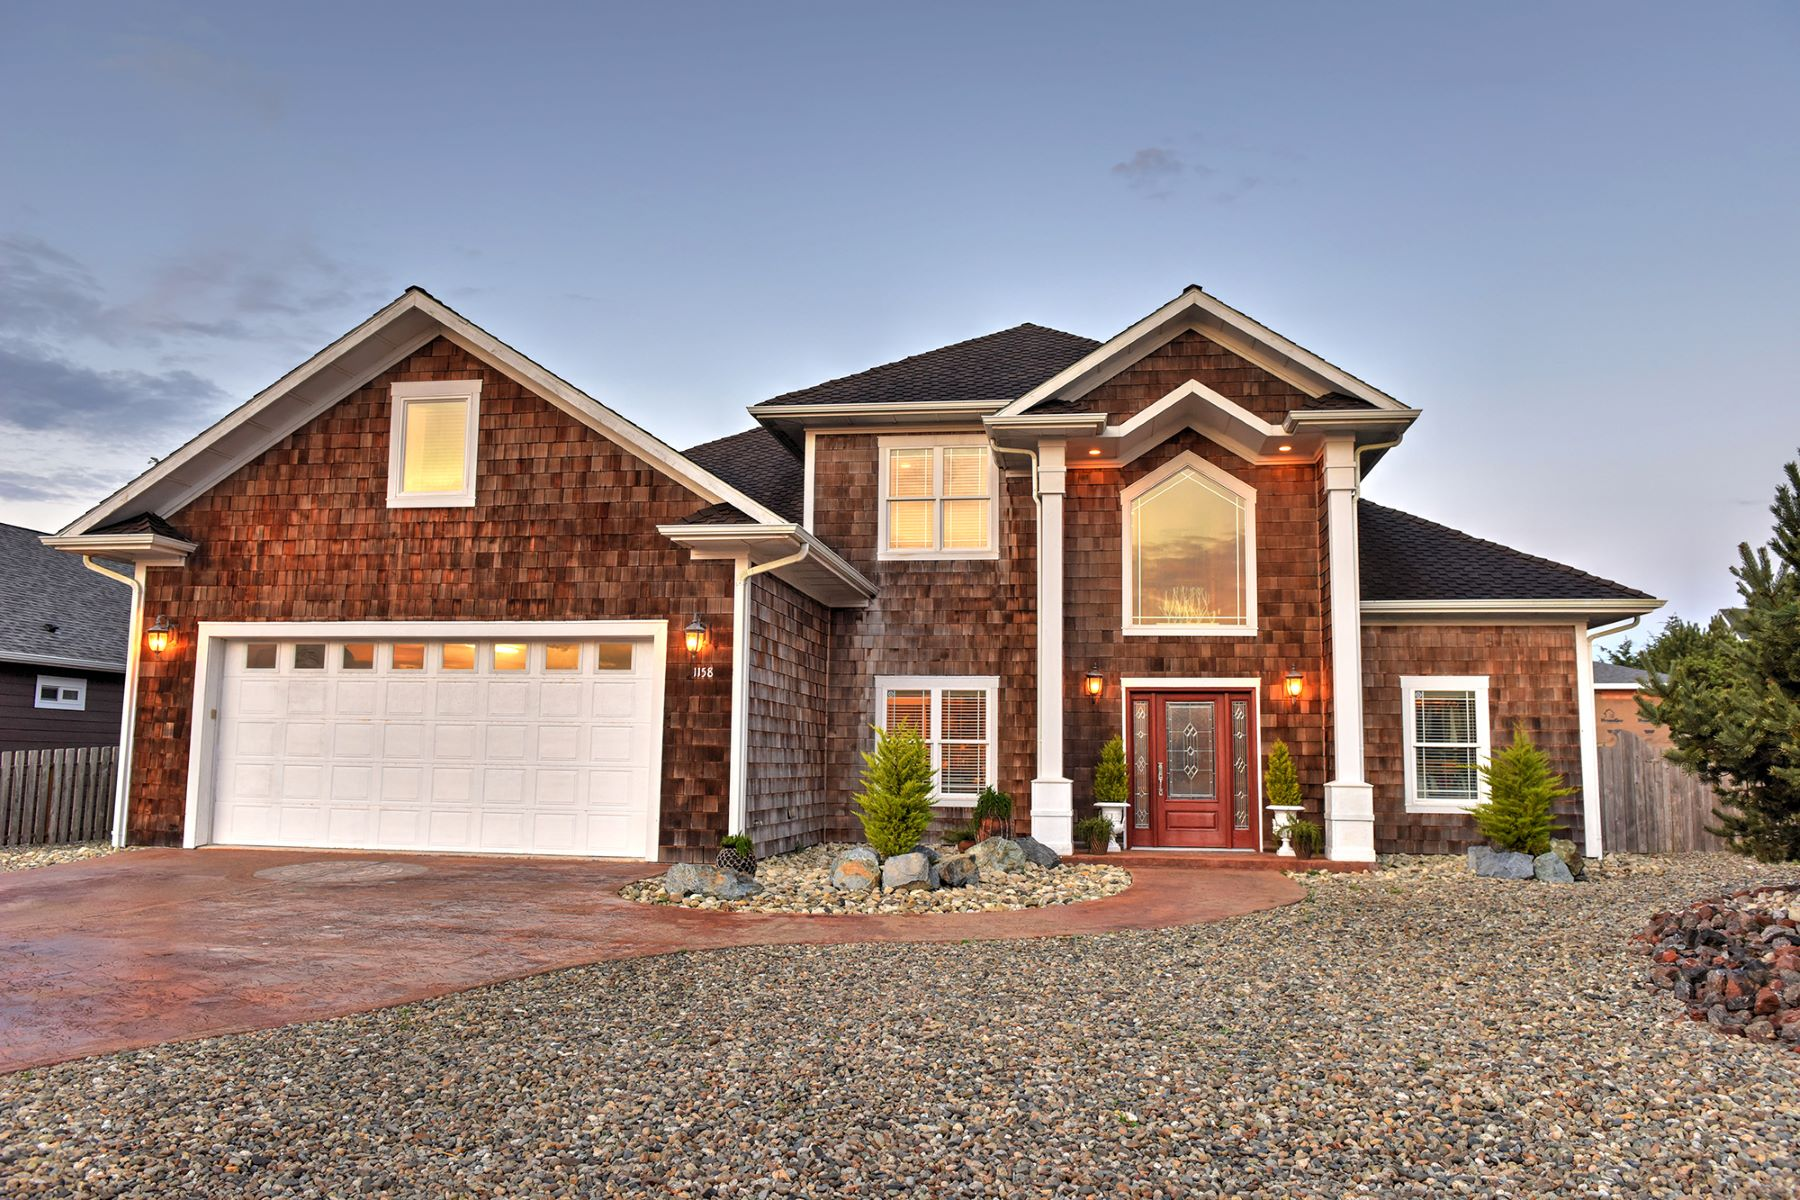 Single Family Home for Sale at Sophisticated Contemporary 1158 Three Wood Drive, Bandon, Oregon, 97411 United States